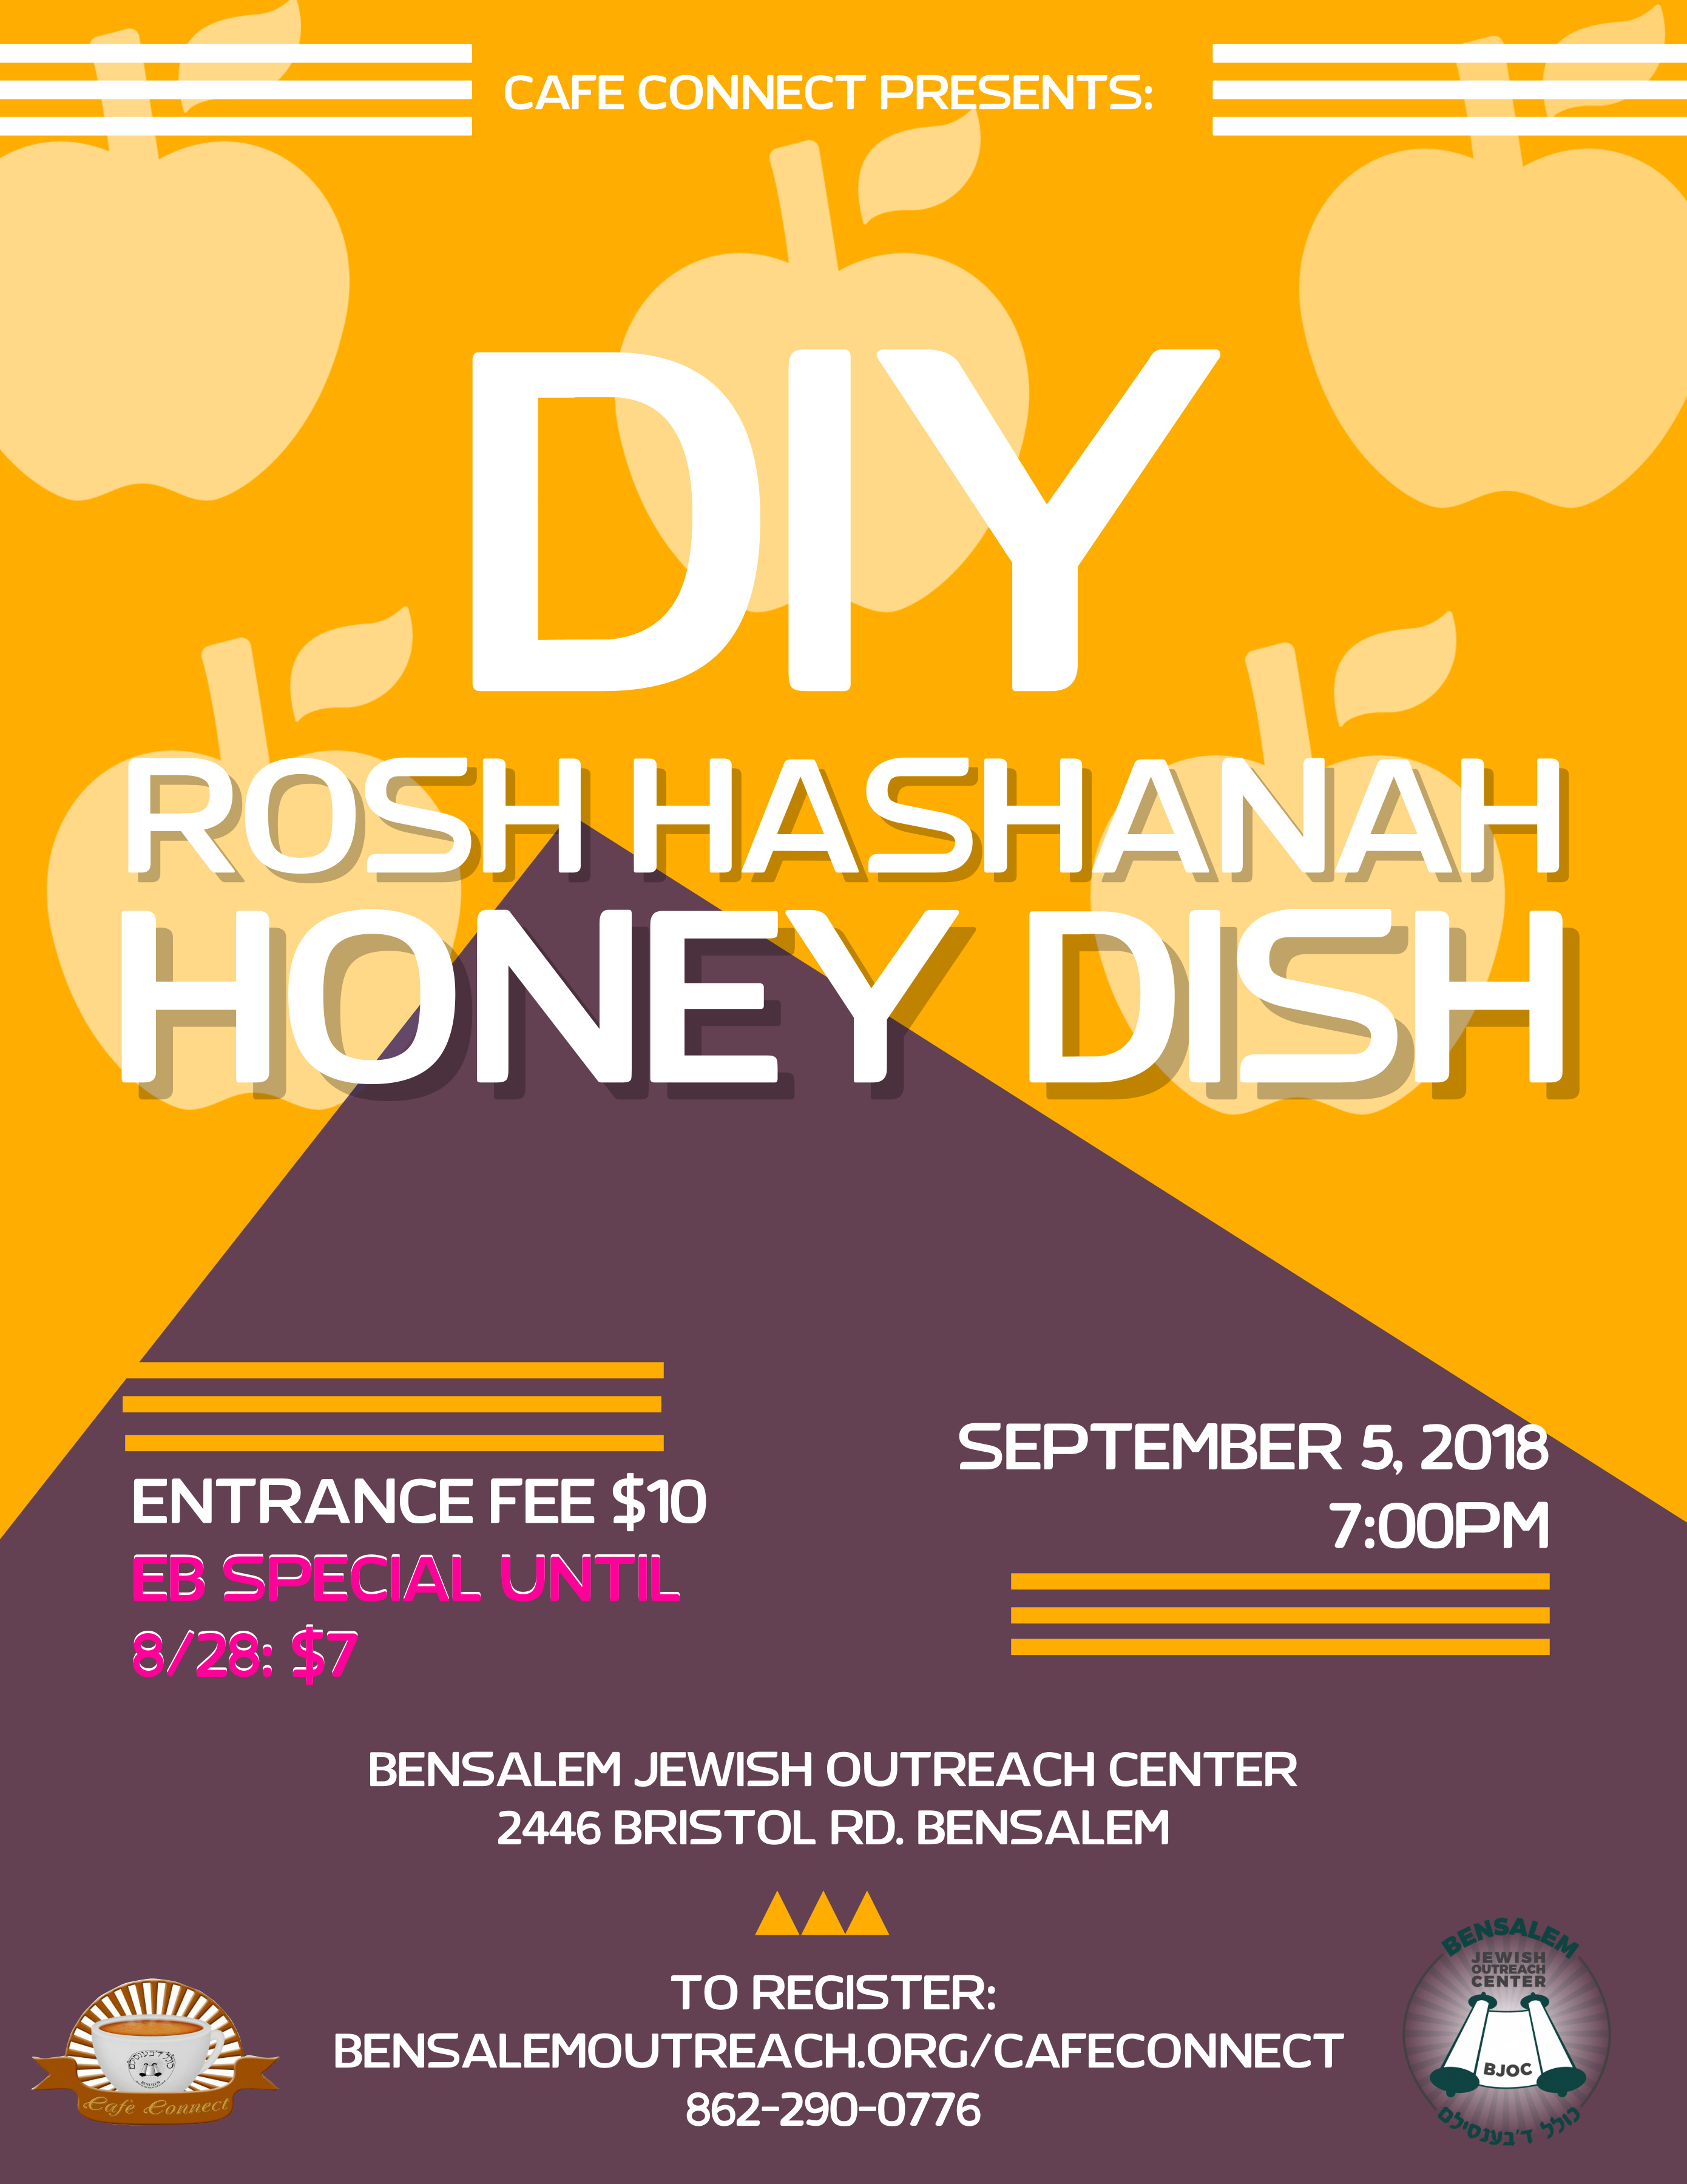 Rosh Hashanah Cafe Connect